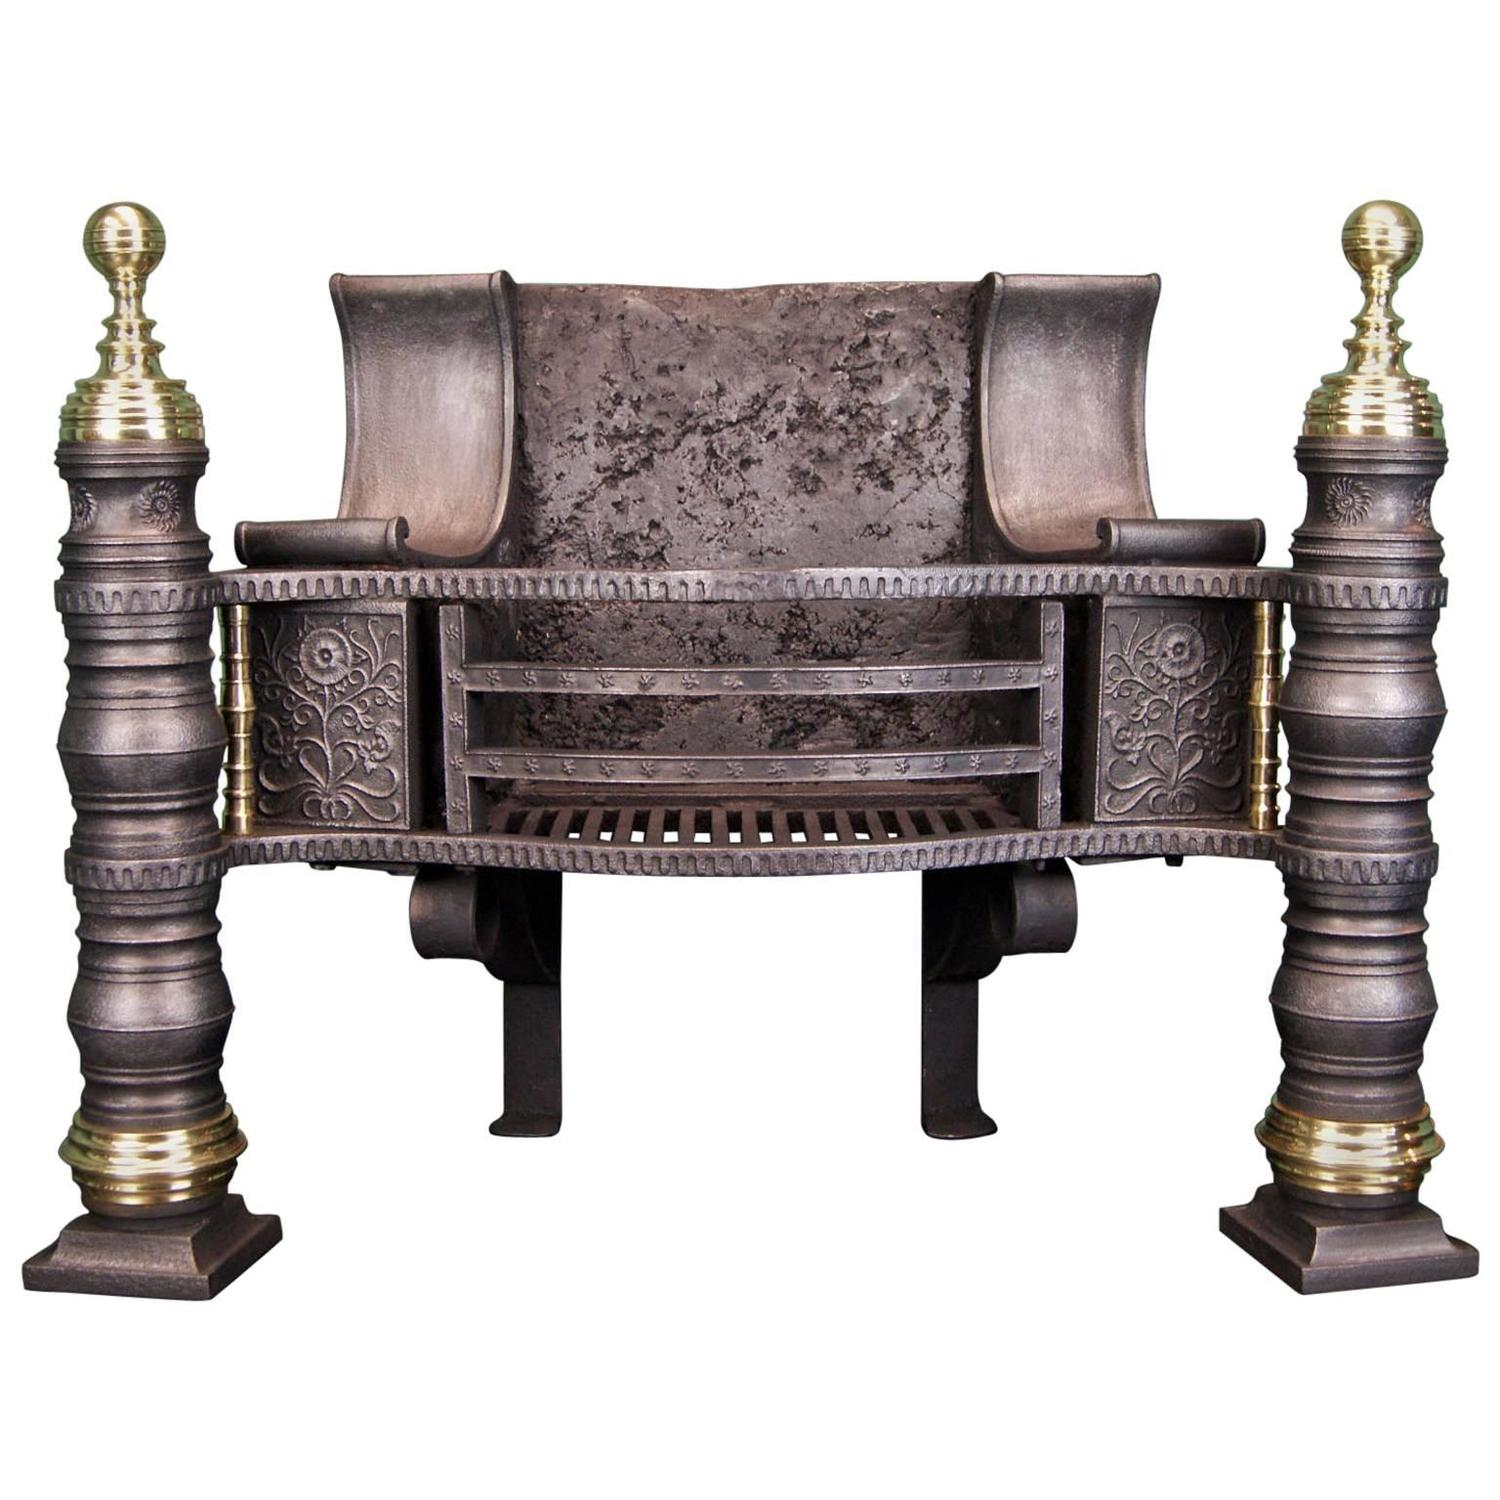 cast iron and brass philip webb pillar fireplace grate for sale at